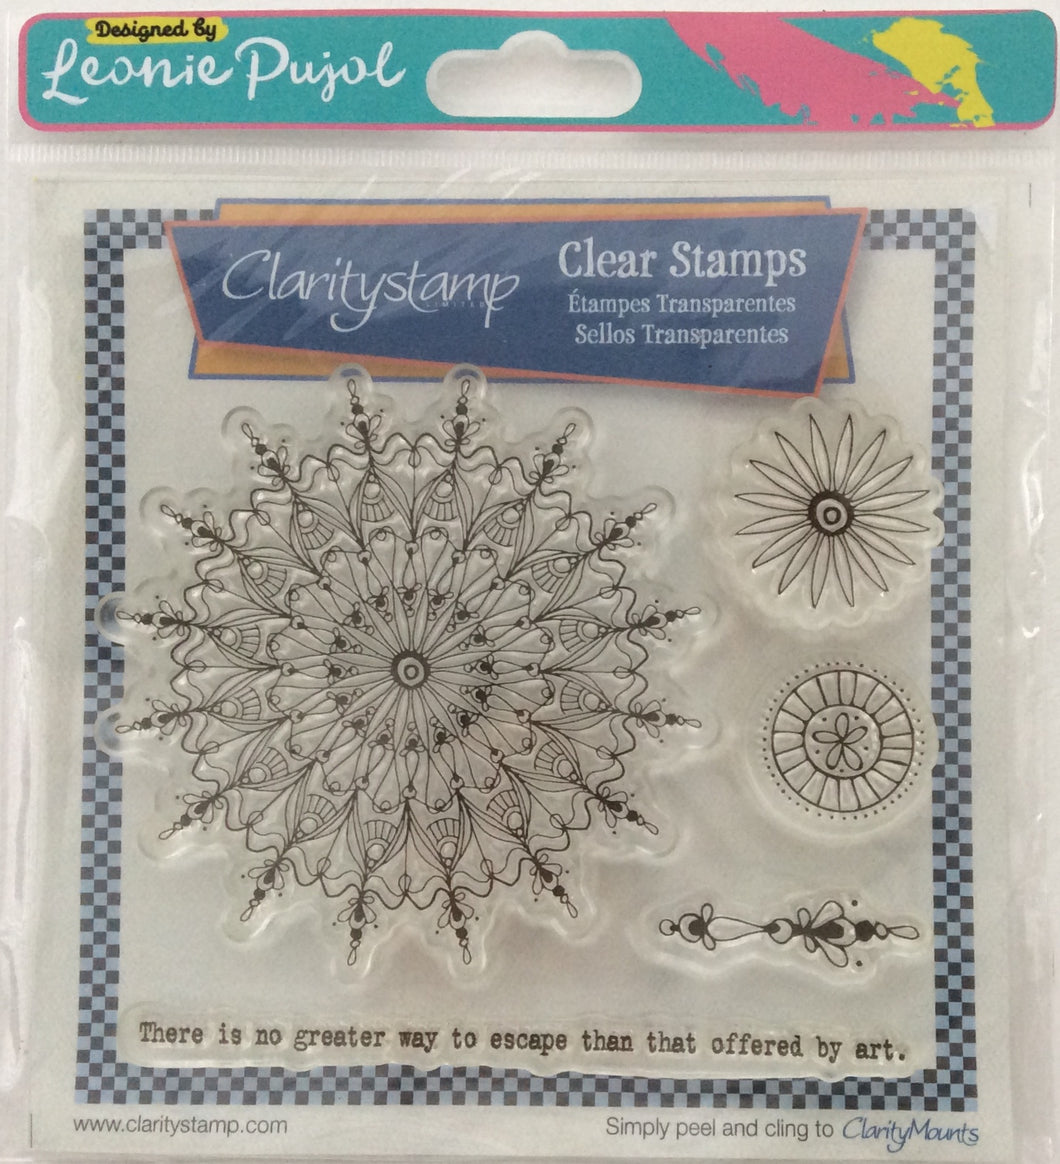 Clarity Stamp Unmounted Clear Stamp Set of 5 Designed by Leonie Pujol - Art Circus